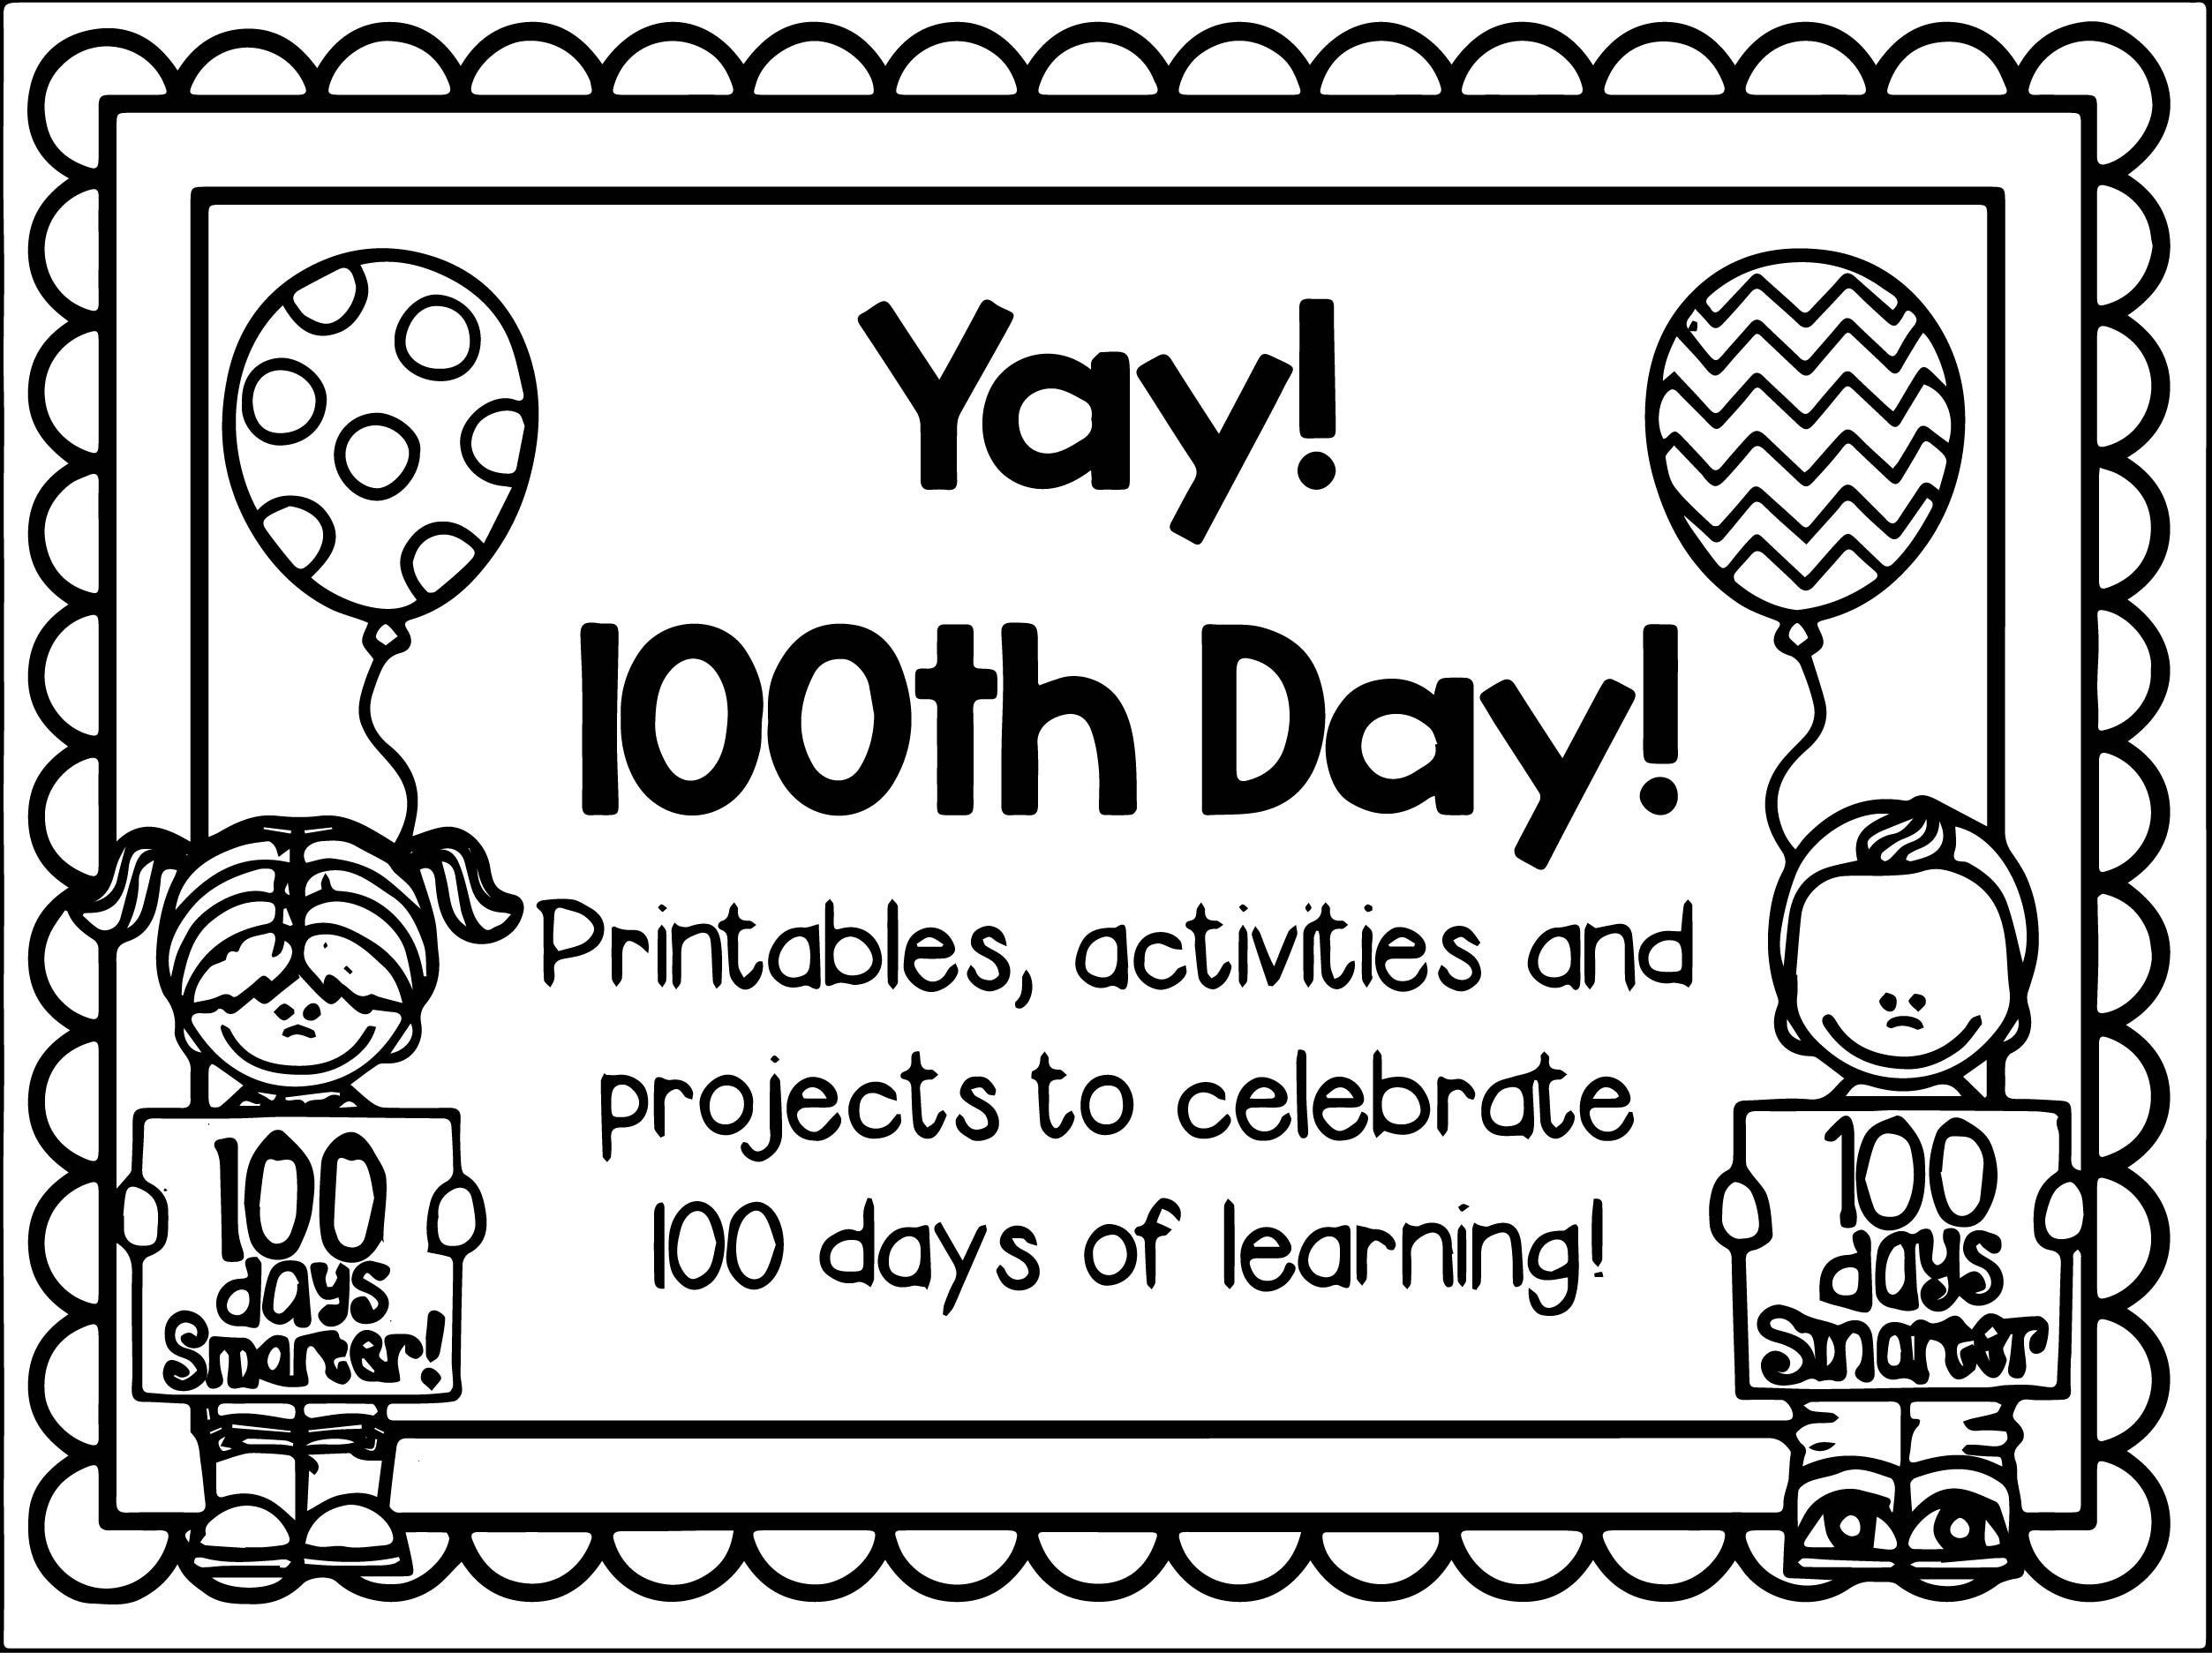 100th Day Of School Worksheets Days School Crafts for Kids Booklet Activities